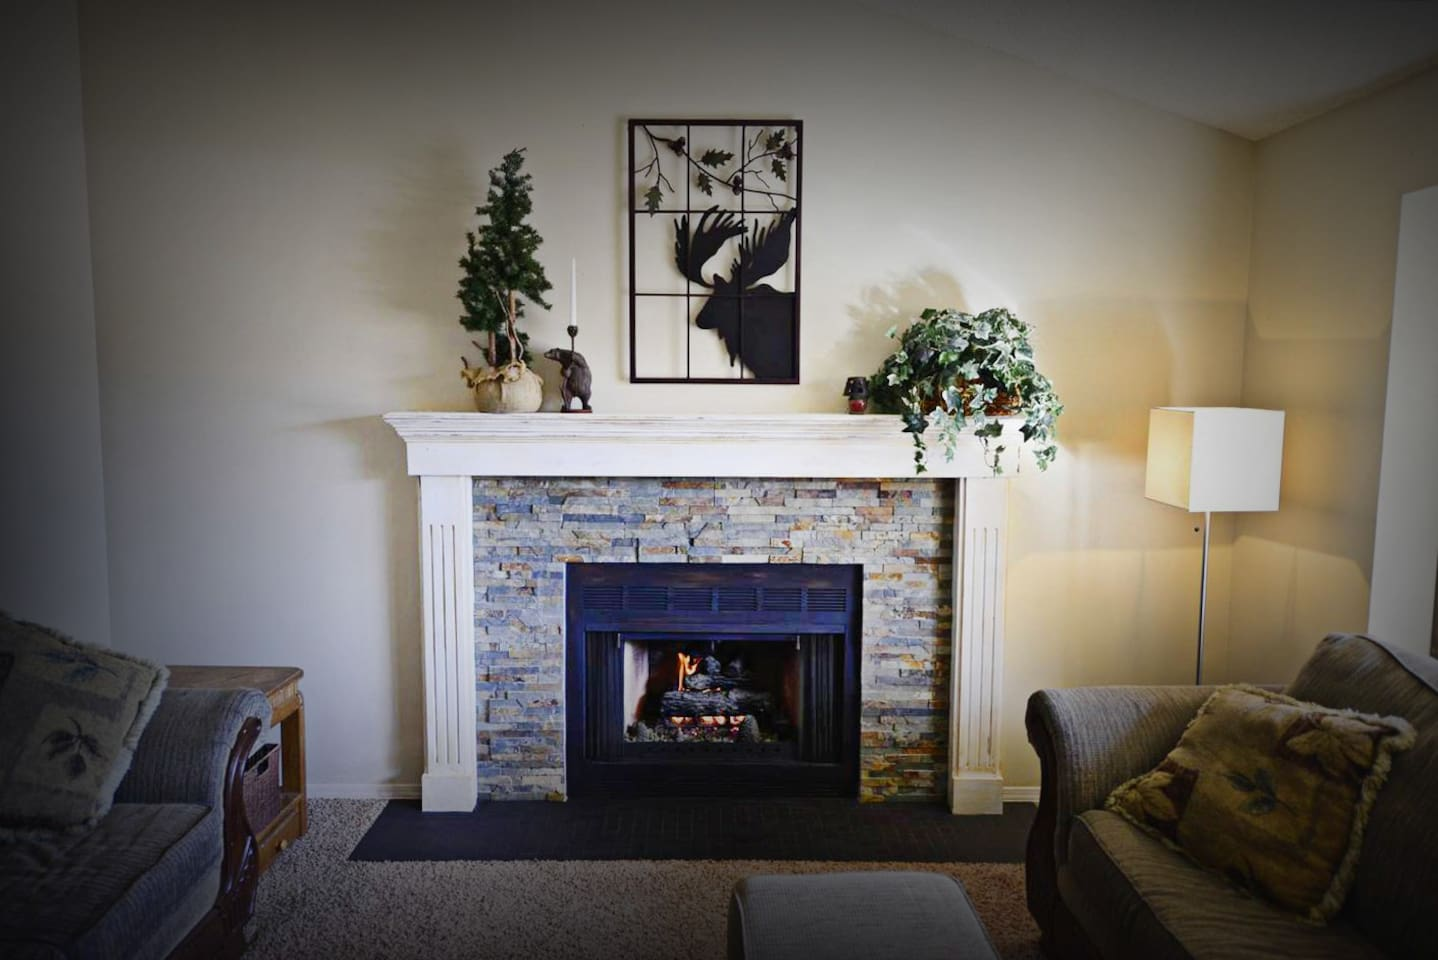 Cozy Gas Fireplace In The Living Room Is Perfect On Those Snowy Winter Days